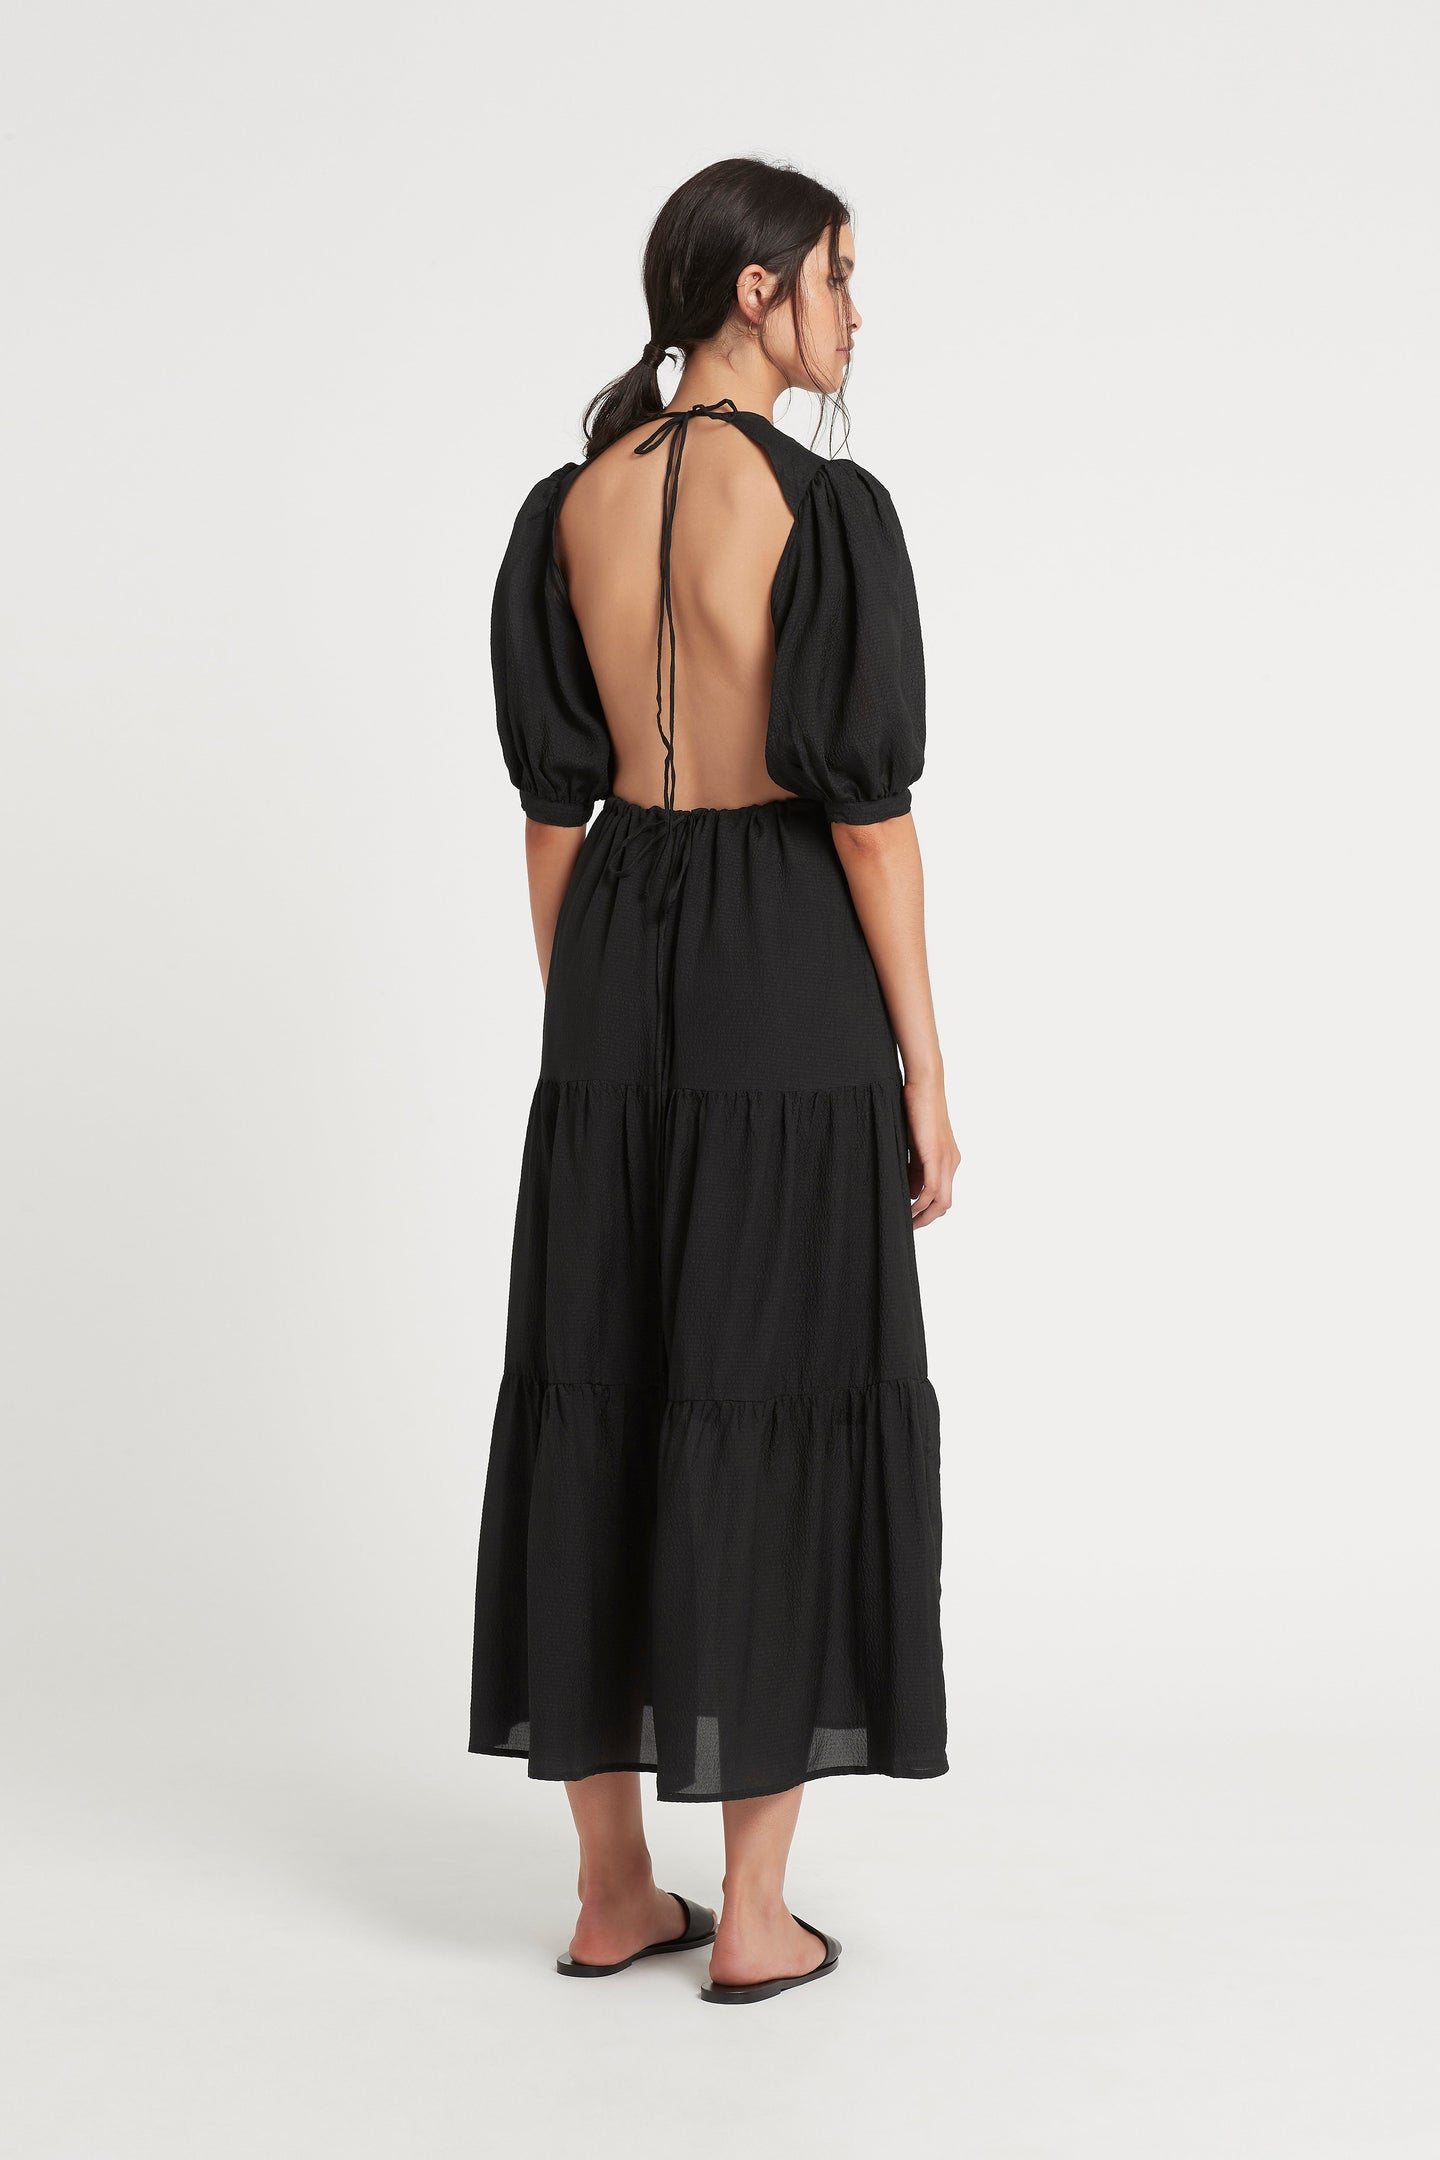 SIR the label INDRE OPEN BACK MIDI DRESS BLACK